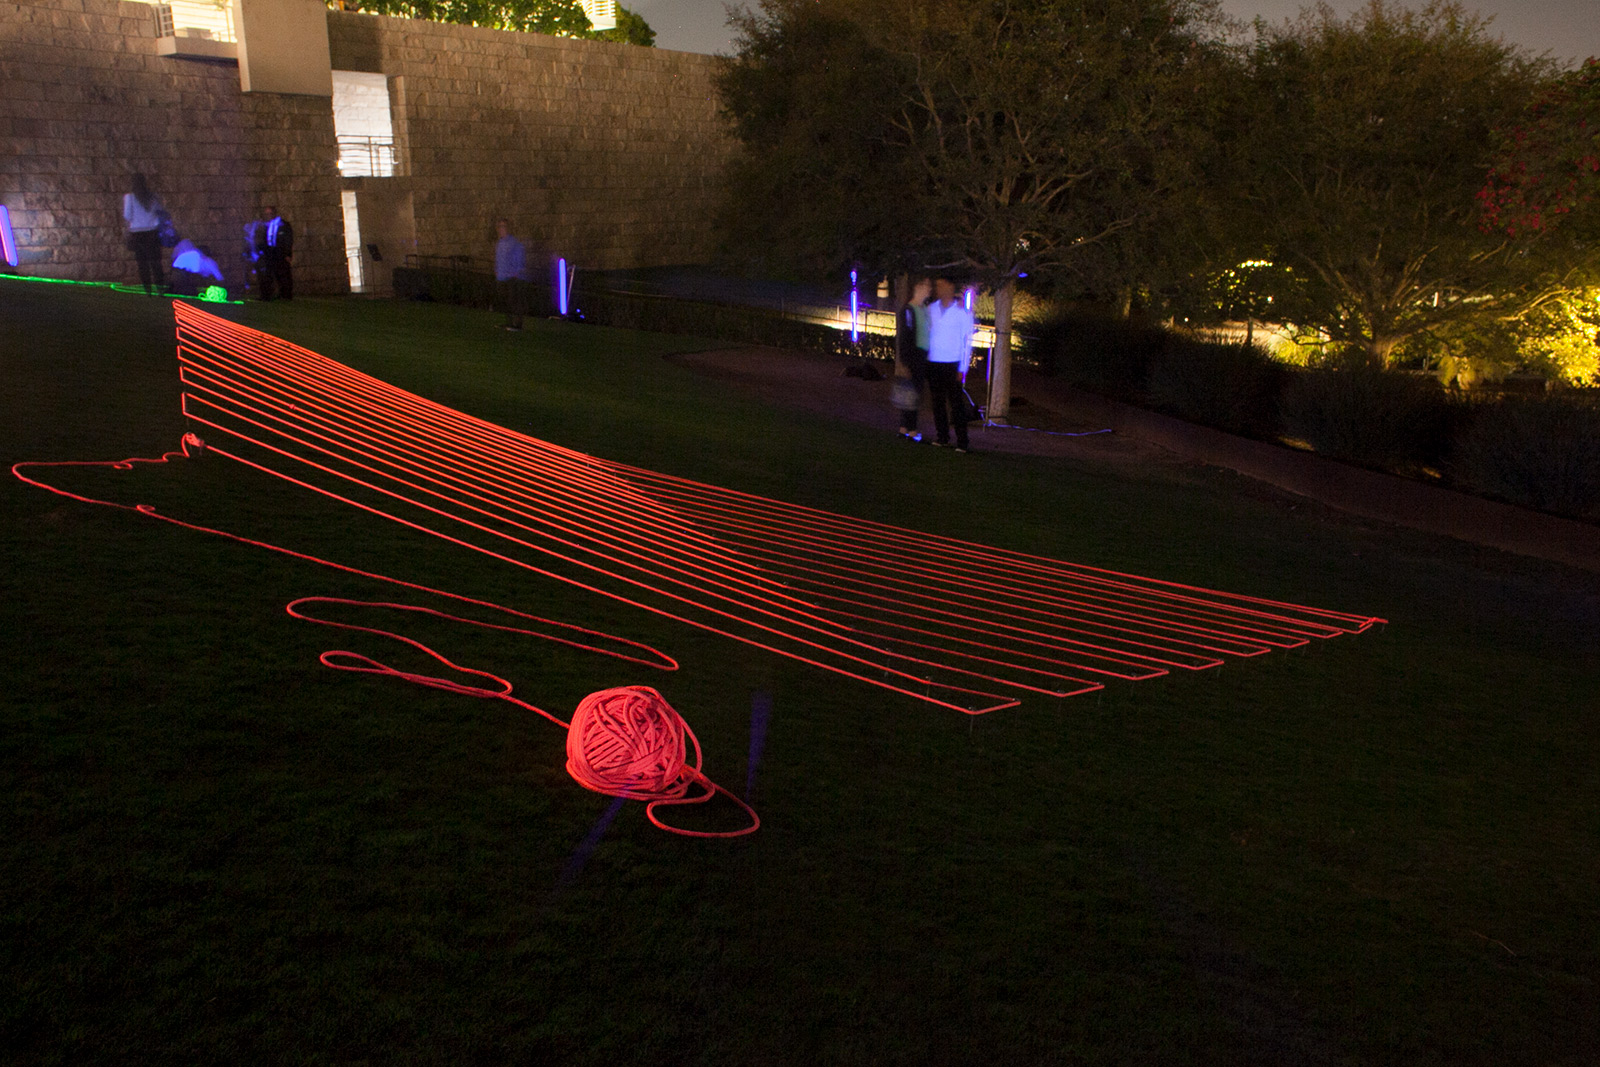 Nighttime view of a large lawn with bright pink glowing rope arrayed in parallel lines